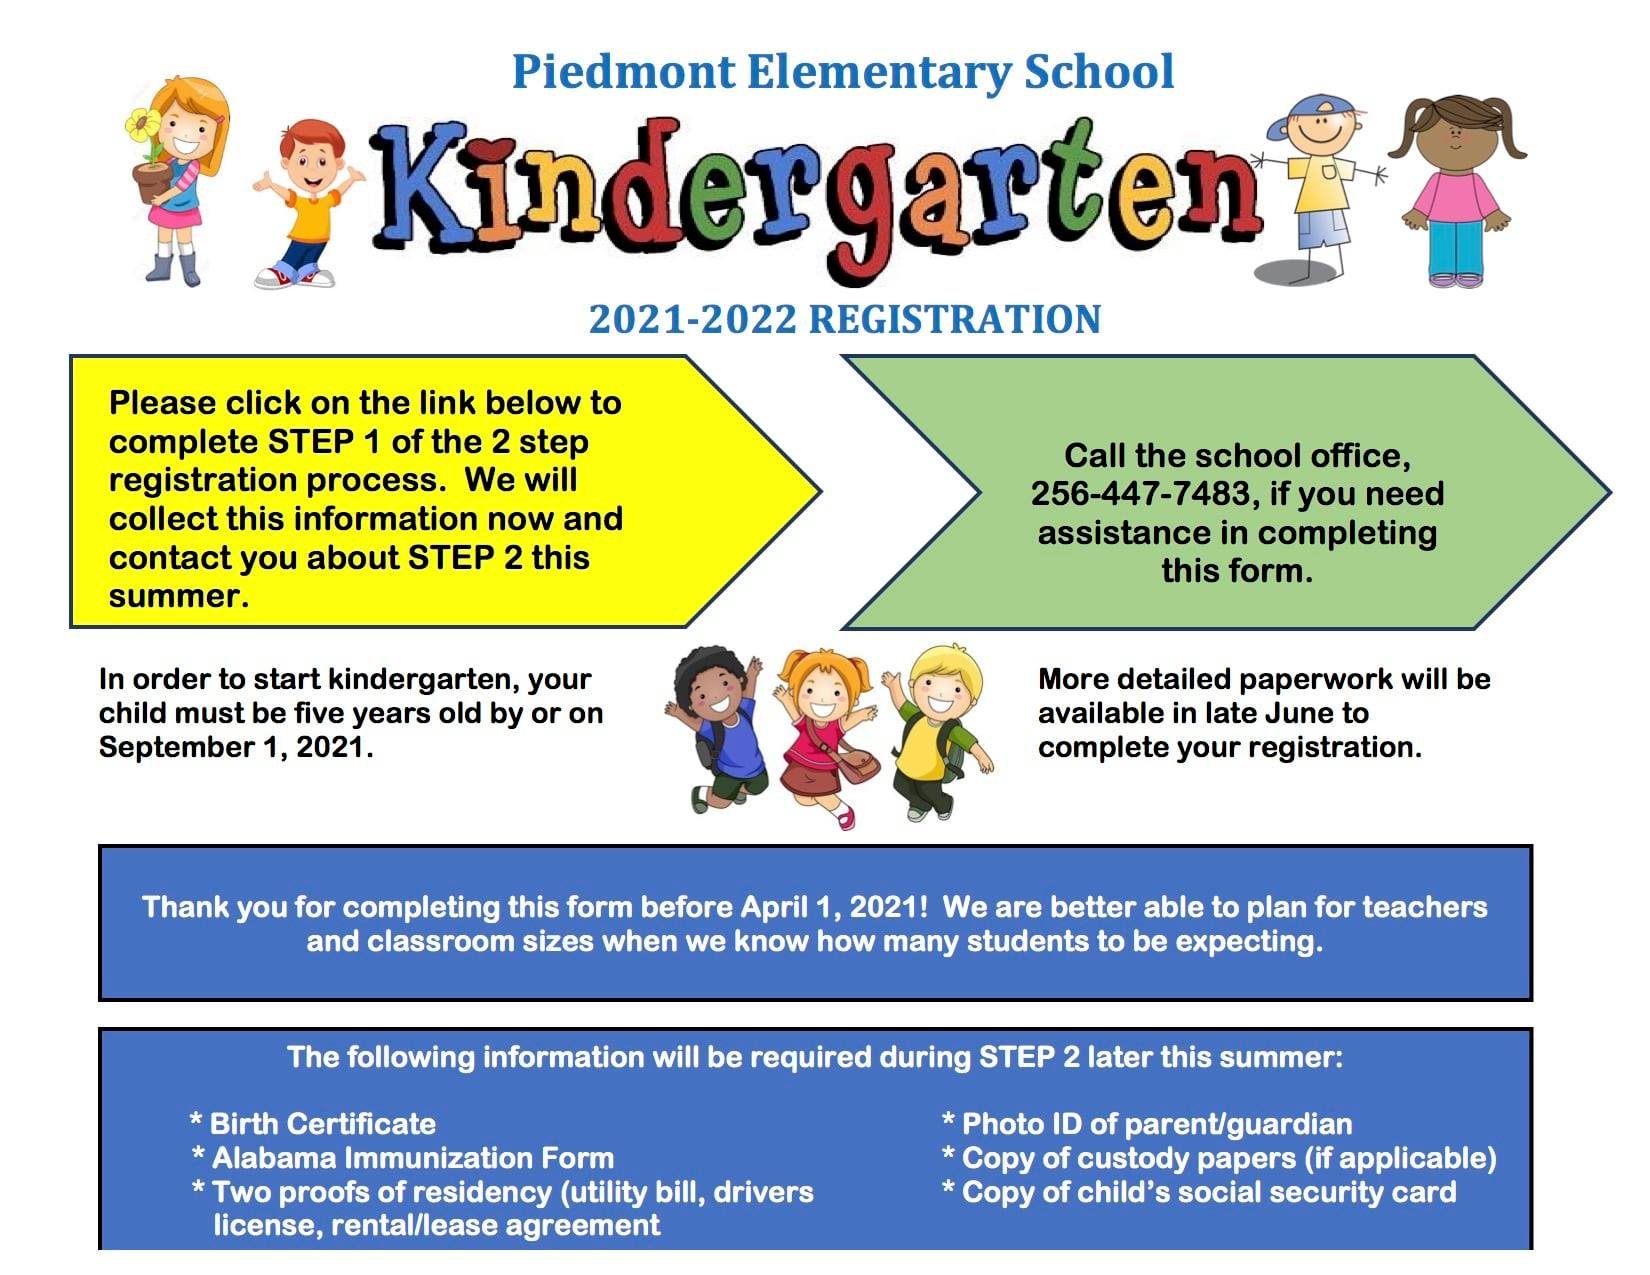 Kindergarten graphic with information about enrolling students